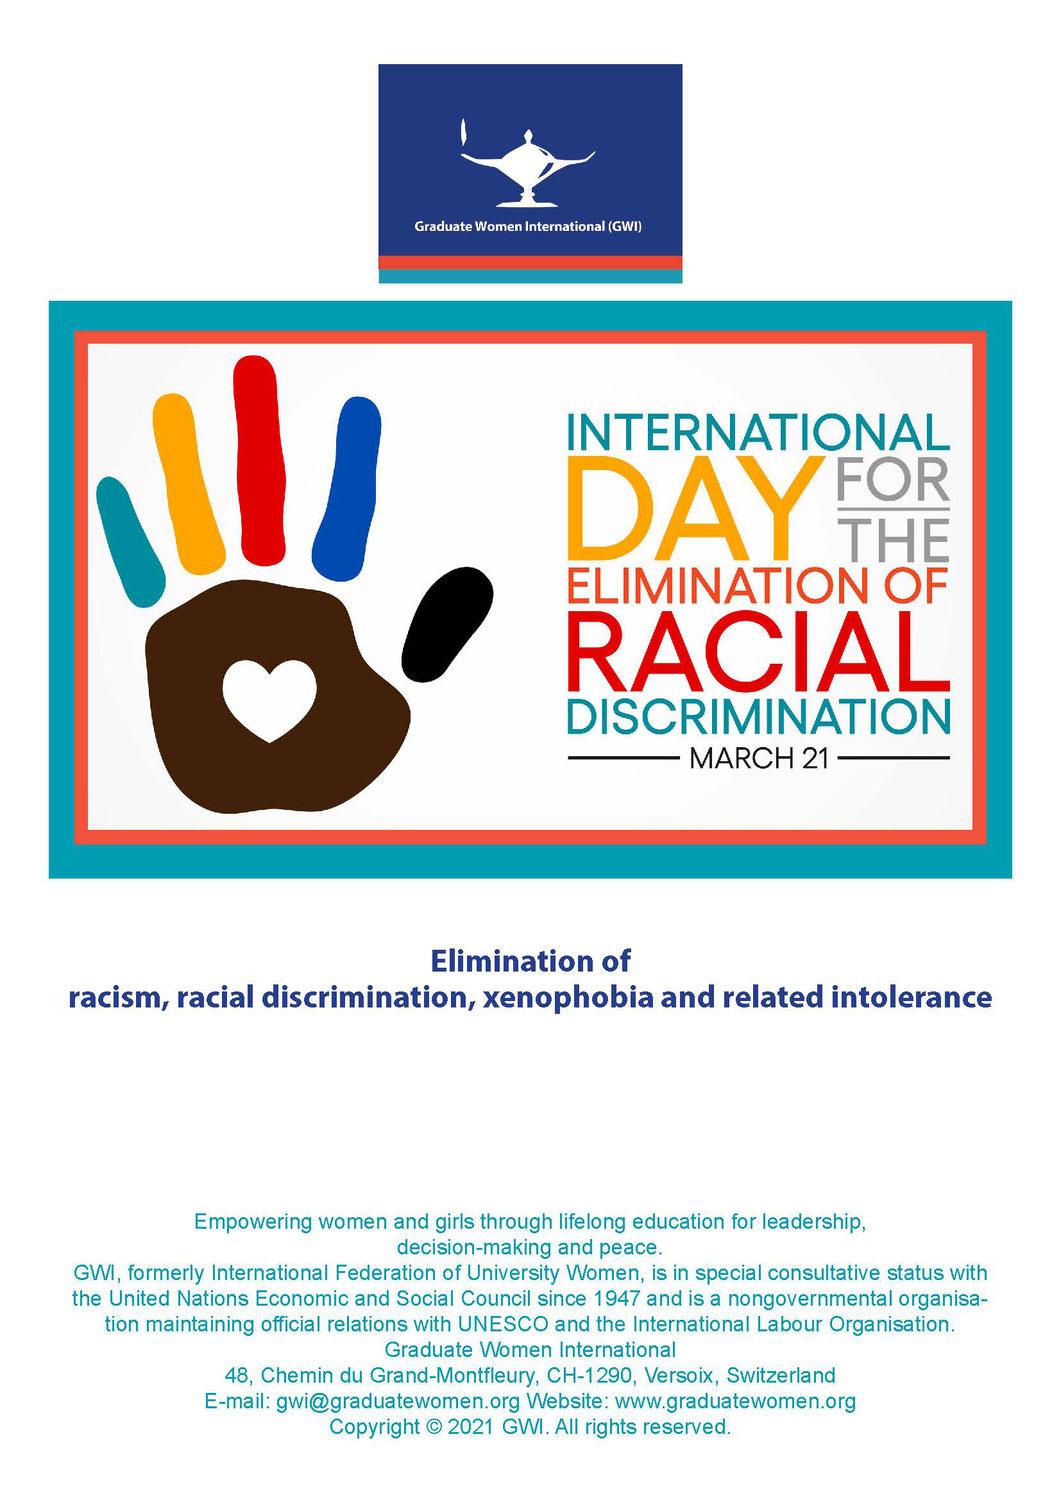 Today is the International Day for the Elimination of Racial Discrimination (IDERD).